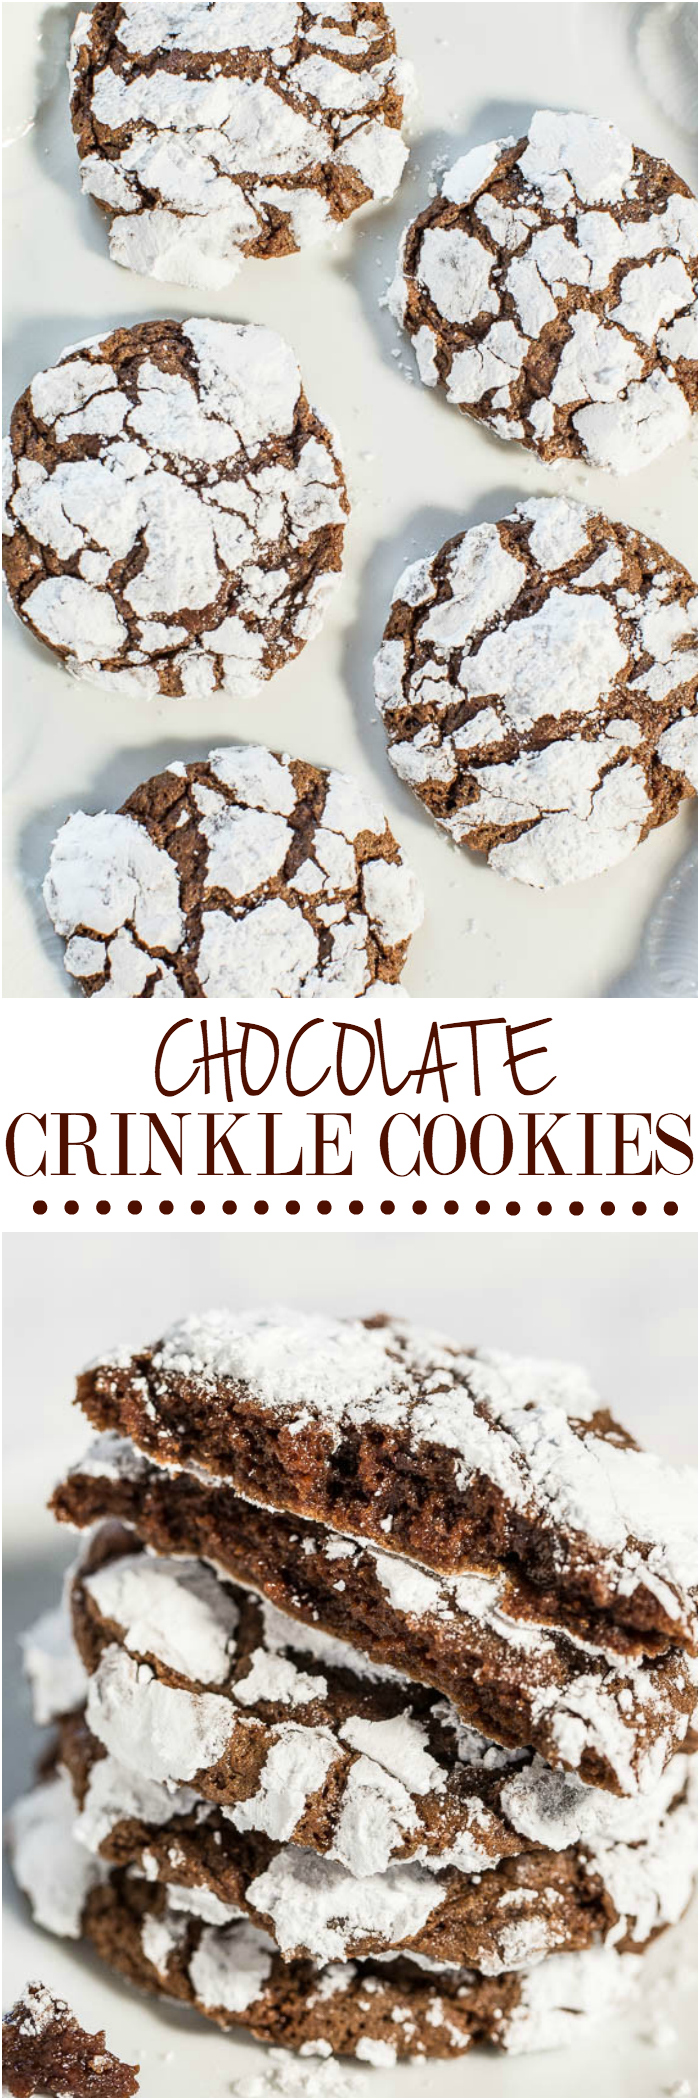 Chocolate Crinkle Cookies - Soft, ultra fudgy and there's NO butter and NO mixer needed! So easy and the crinkles make them irresistible!! Break them apart at the crinkly seams and start nibbling!!